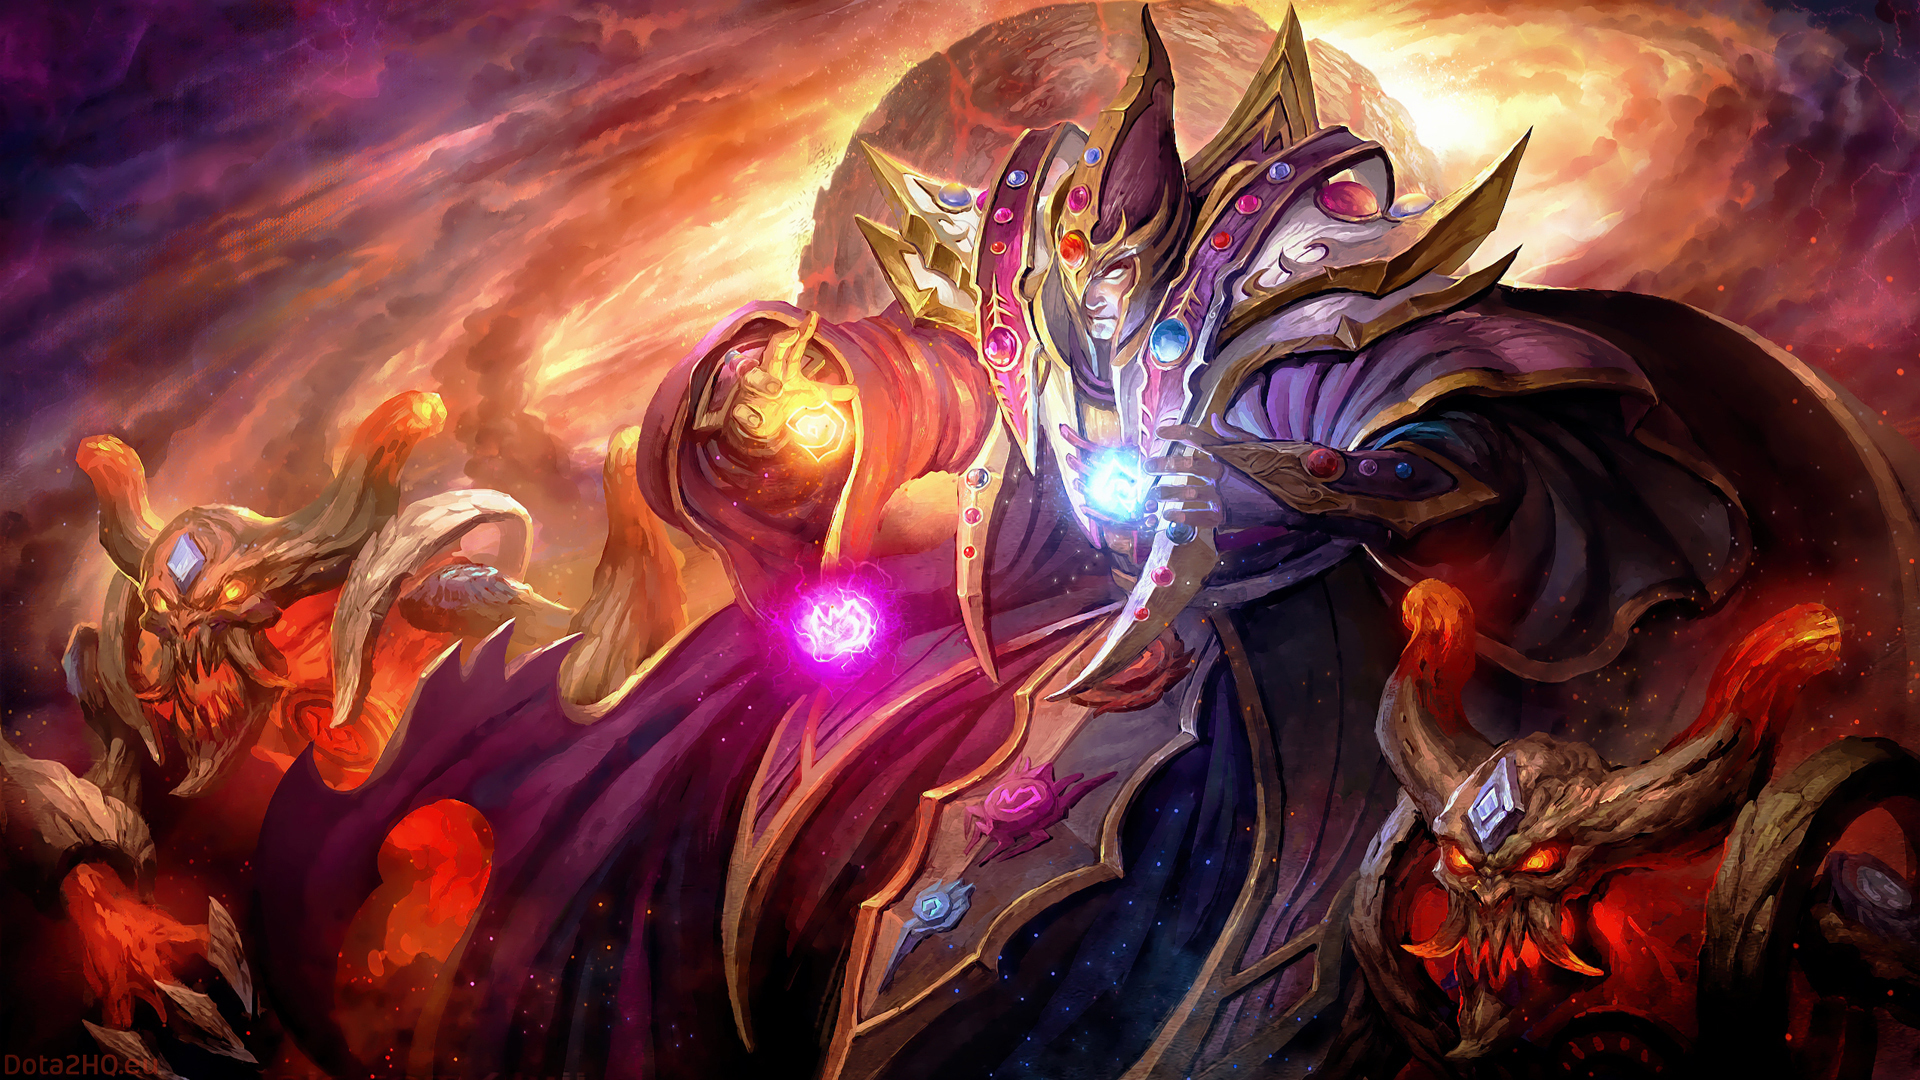 Invoker Dota 2 Art King Game Character Wallpaper WallpapersByte 1920x1080